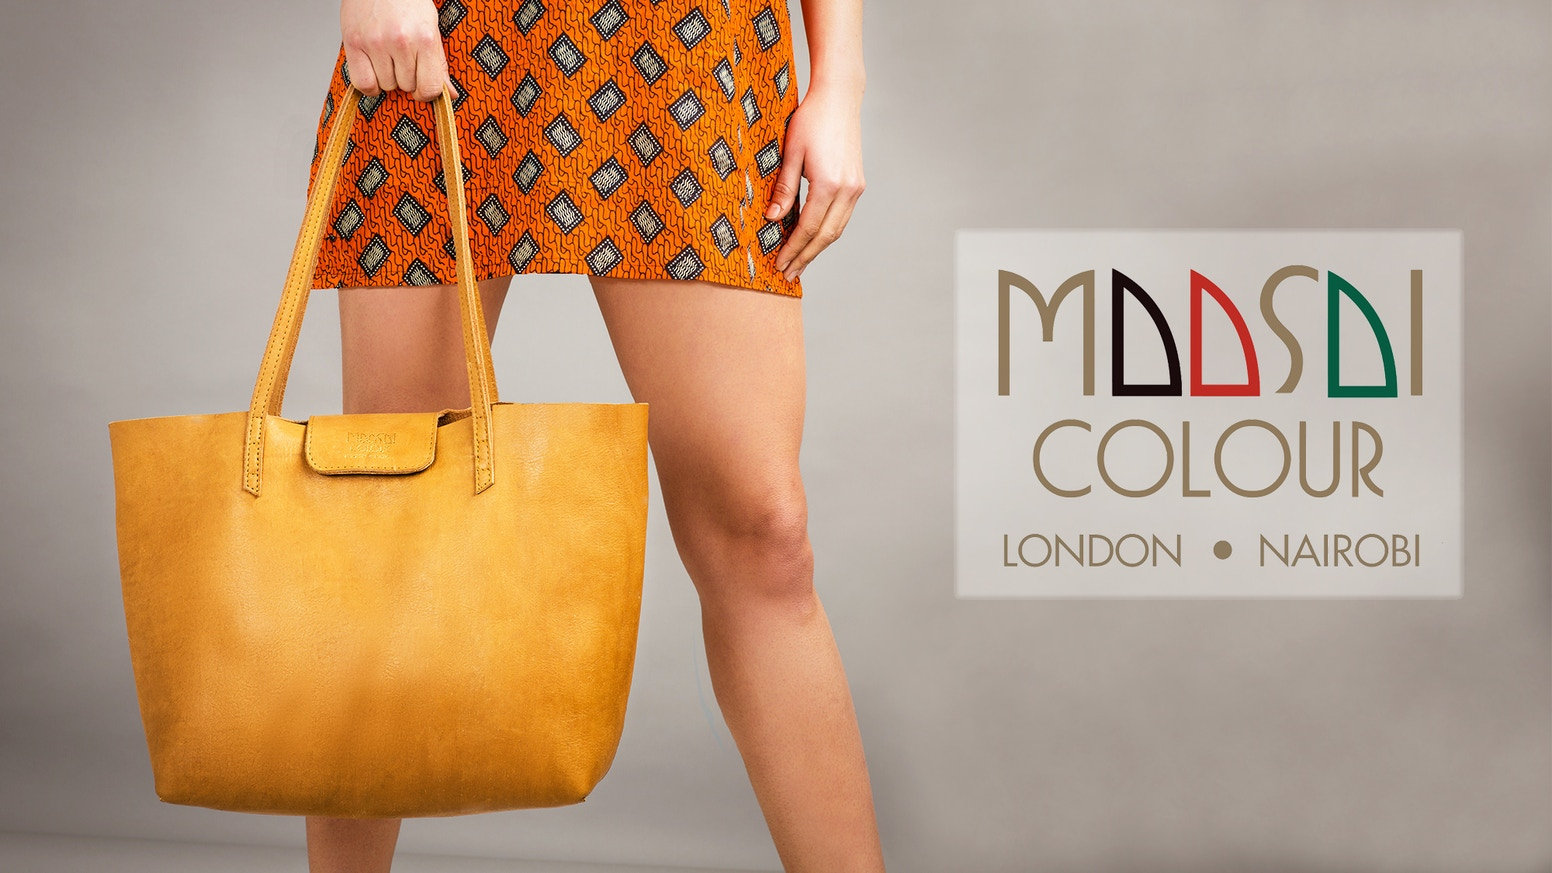 Expertly made luxury handbags - completely unique and customisable by you. The perfect gift! Look good whilst you do good.